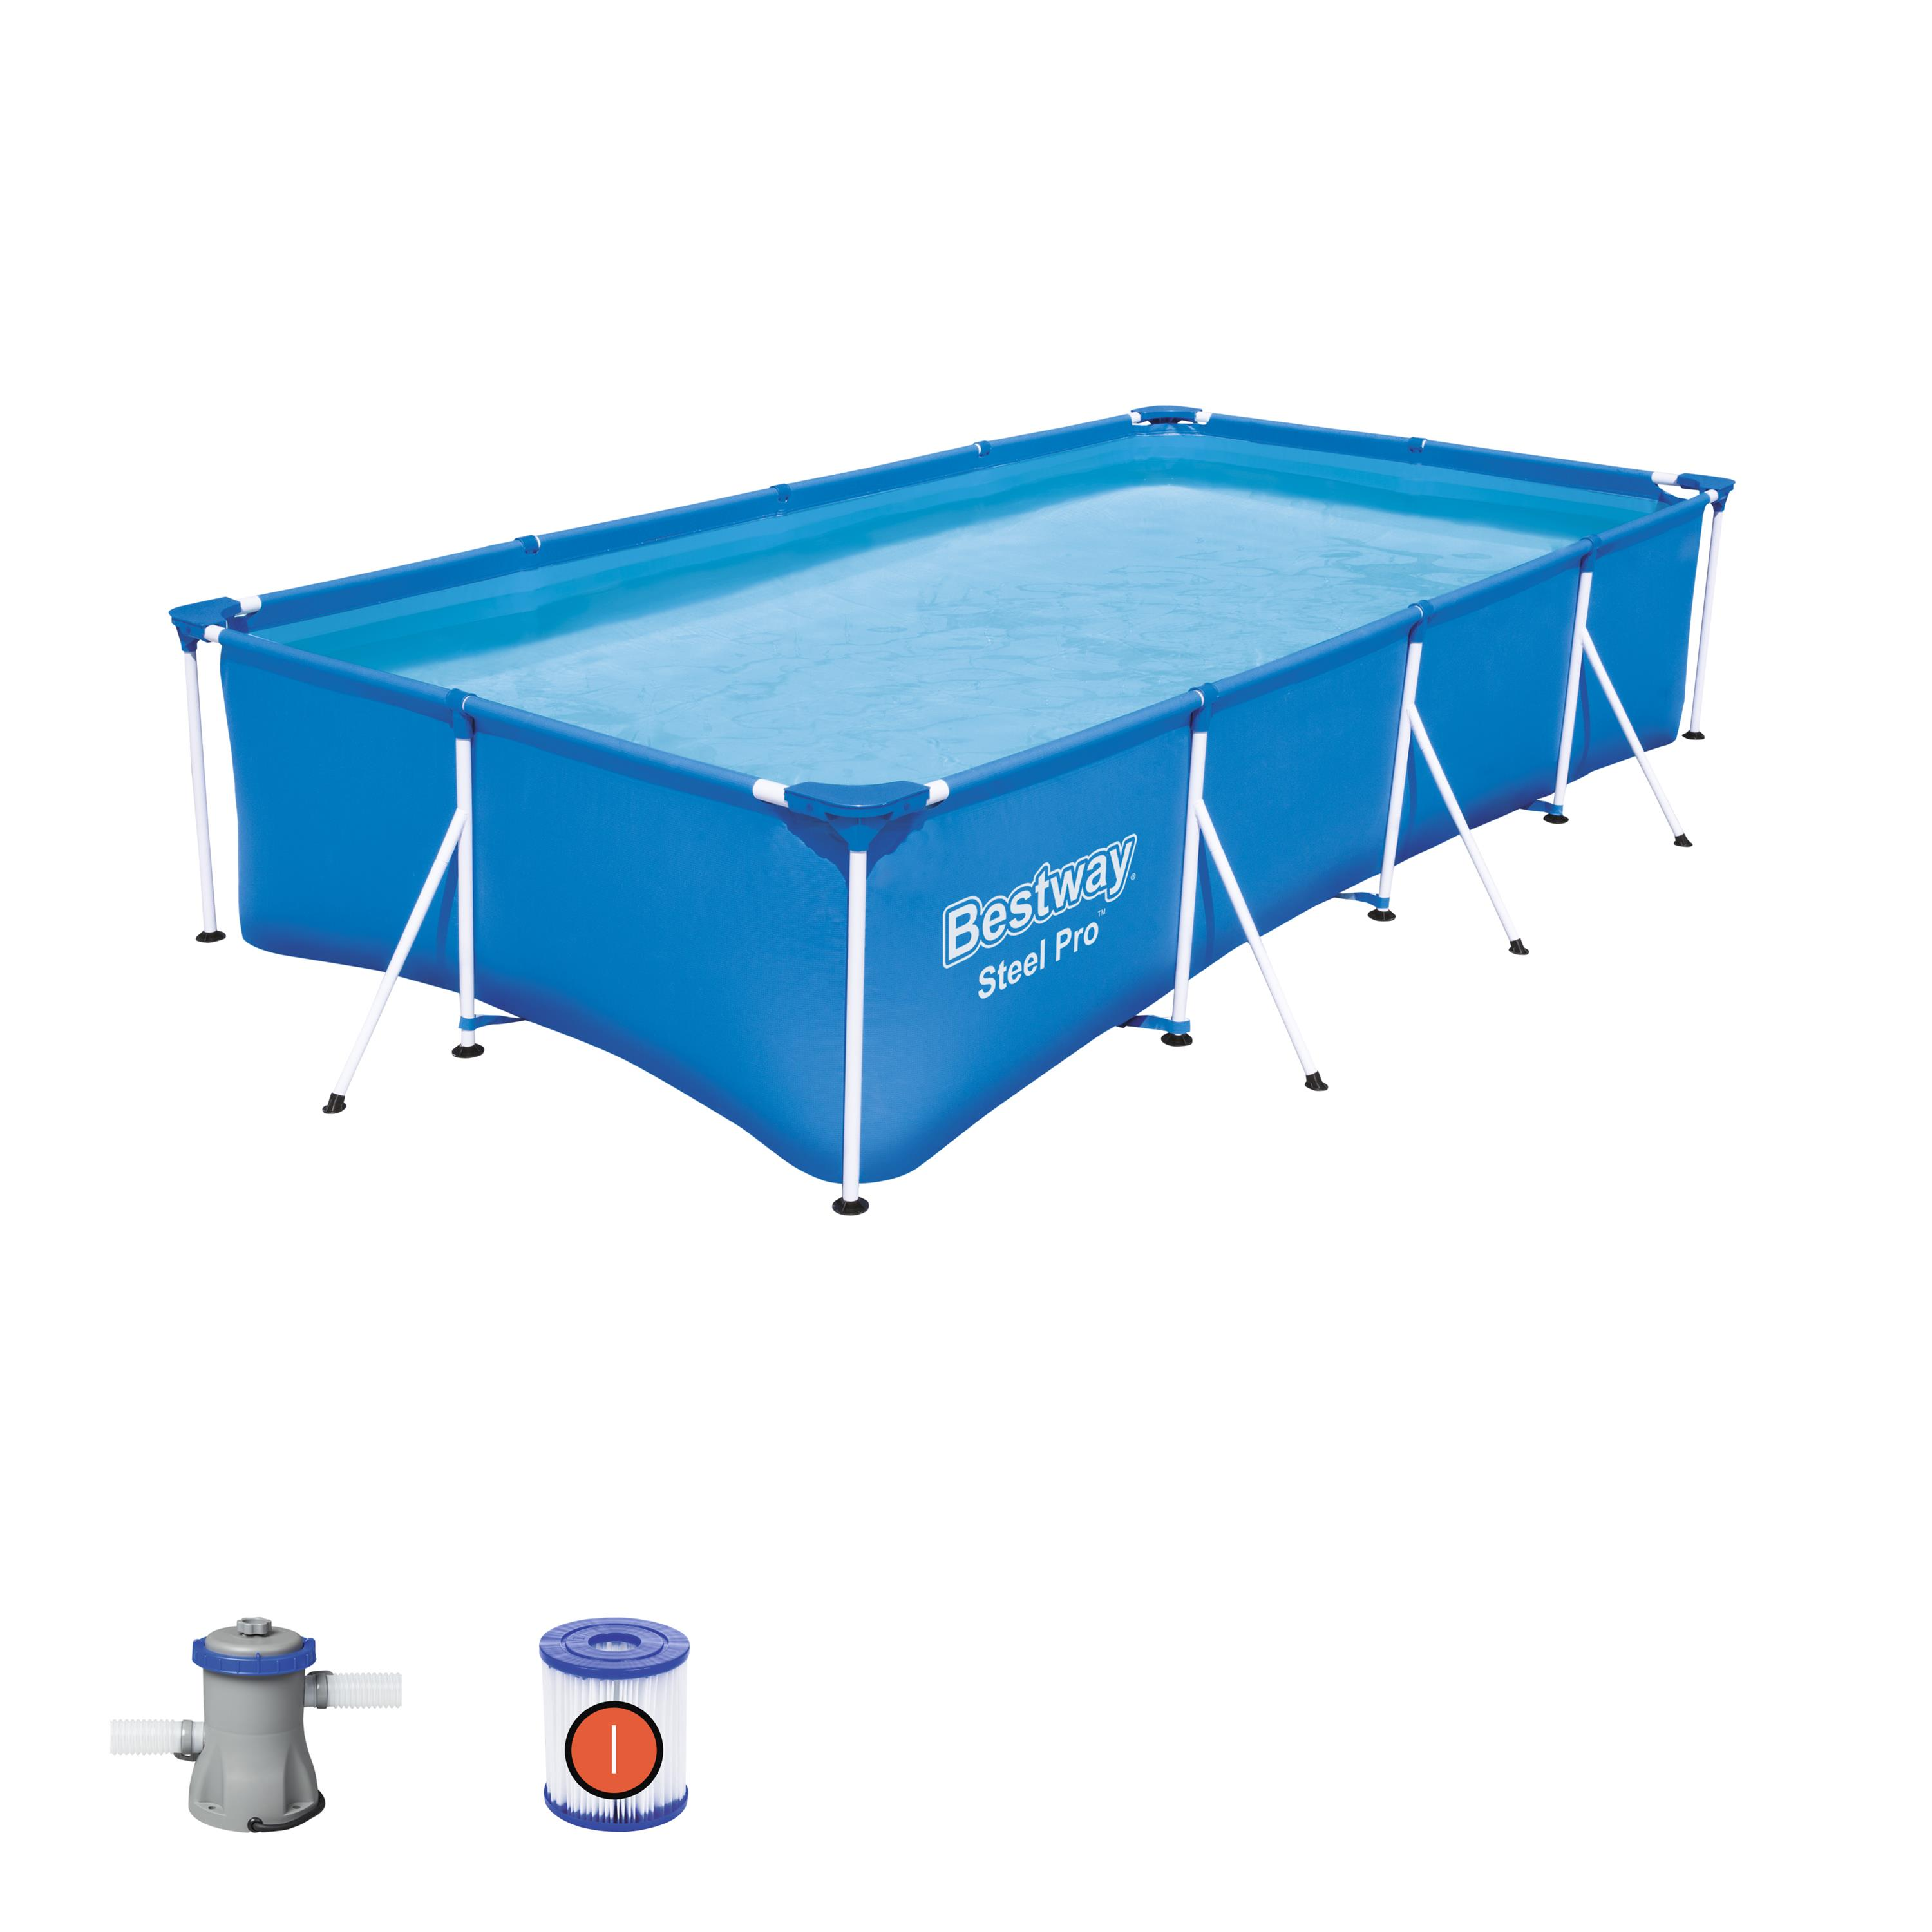 Scaffold Rectangular Pool 400 х211х81 Cm, 5700 L, Bestway, Blue, Item No. 56424/56082